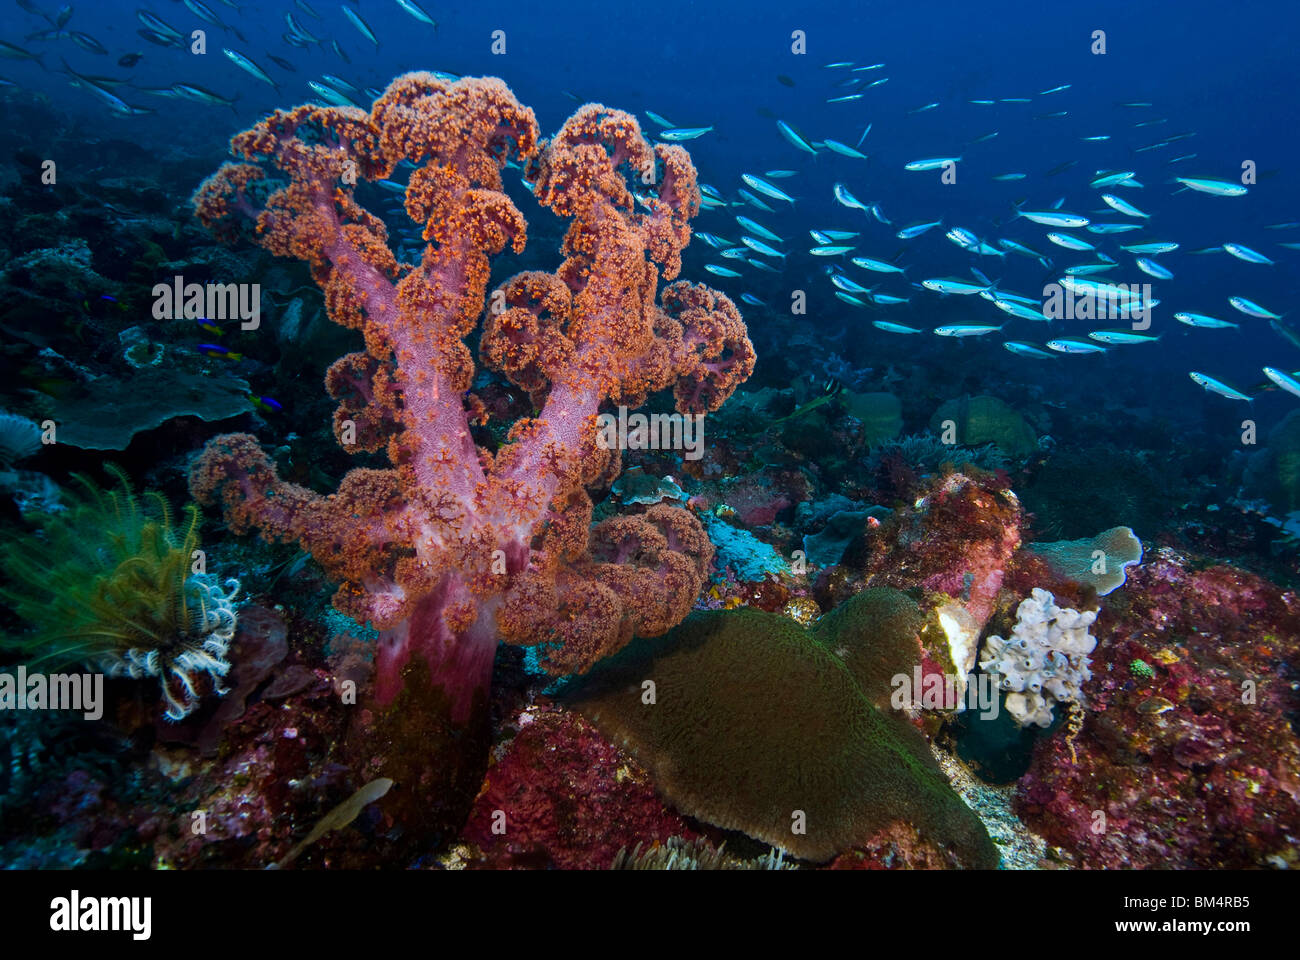 Soft Coral at Coral Reef, Dendronephthya sp., Pura Island, Alor Archipel, Lesser Sunda Islands, Indonesia - Stock Image